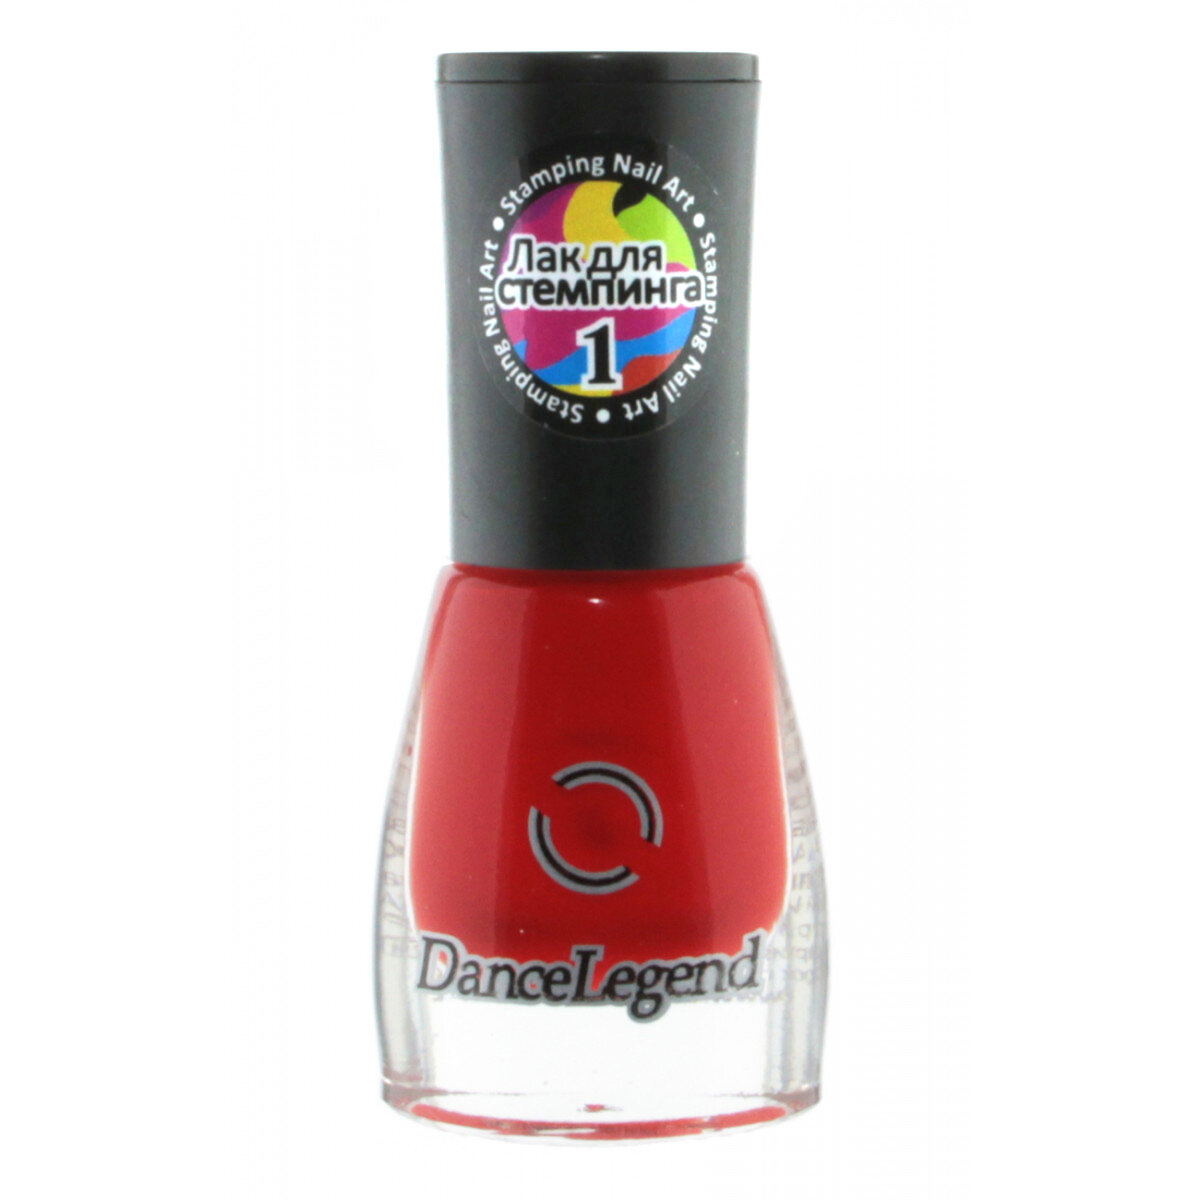 Лак для стемпинга Dance Legend 01 Red